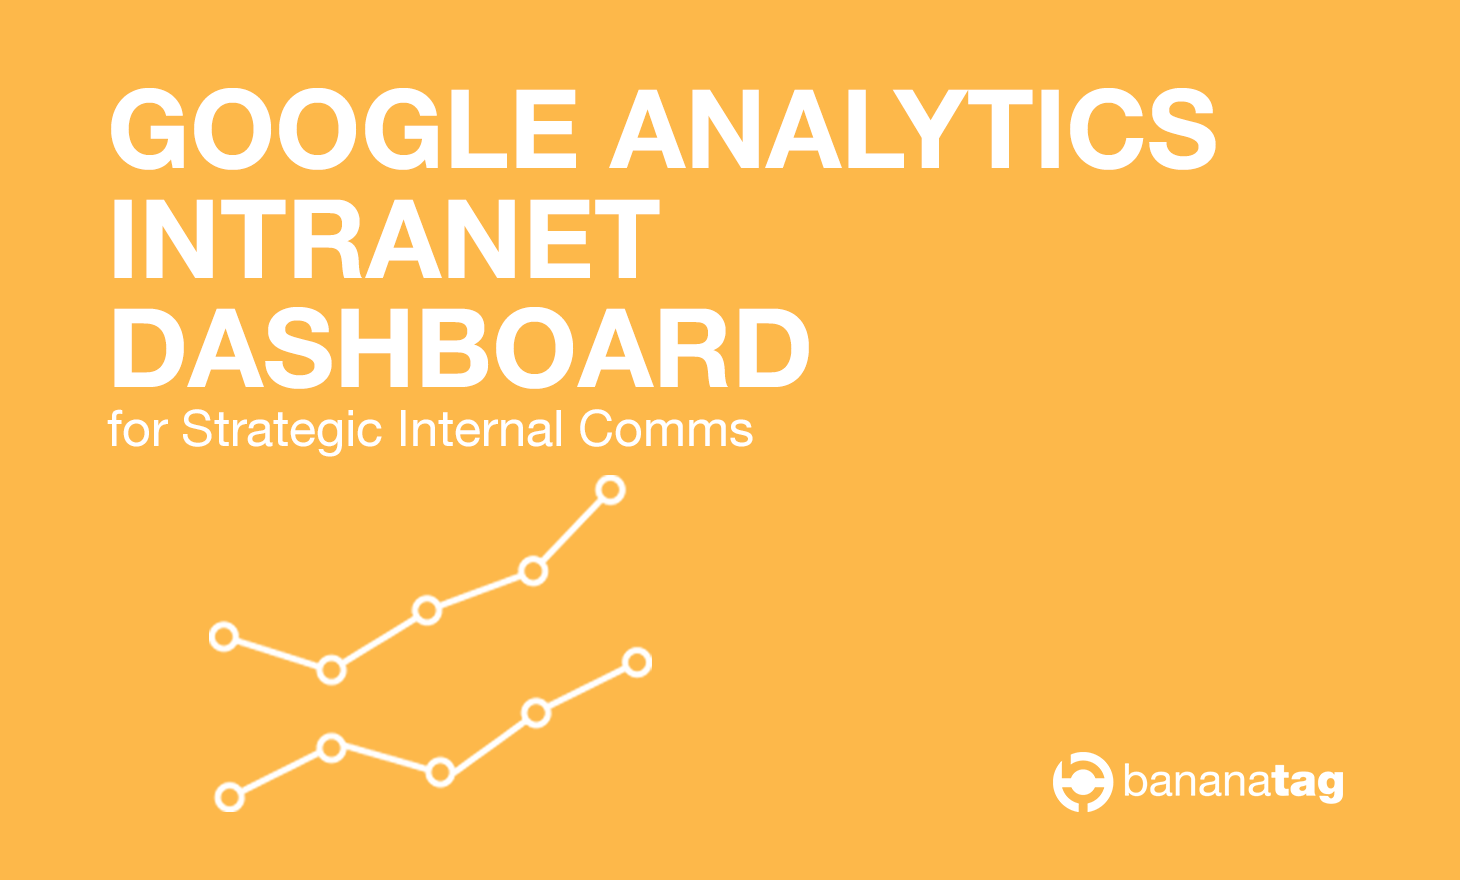 Google Analytics Intranet Dashboard